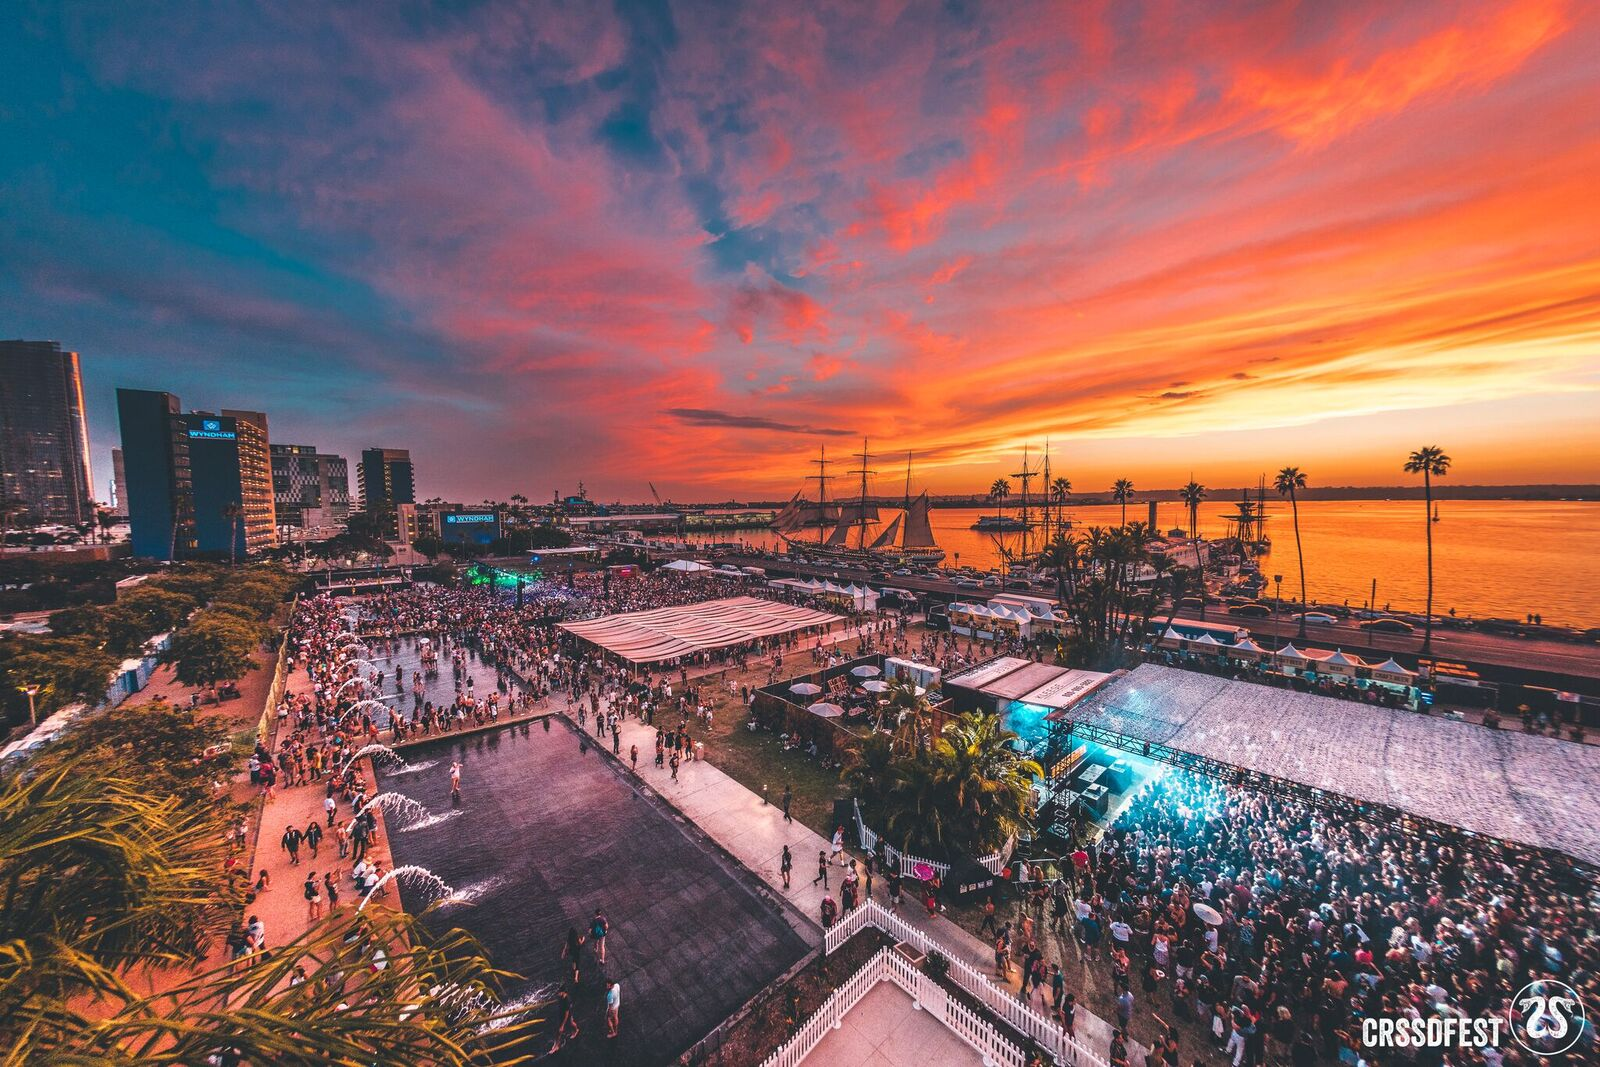 CRSSD Fall 2018 – A Weekend of Sun, Sound, and Smiles